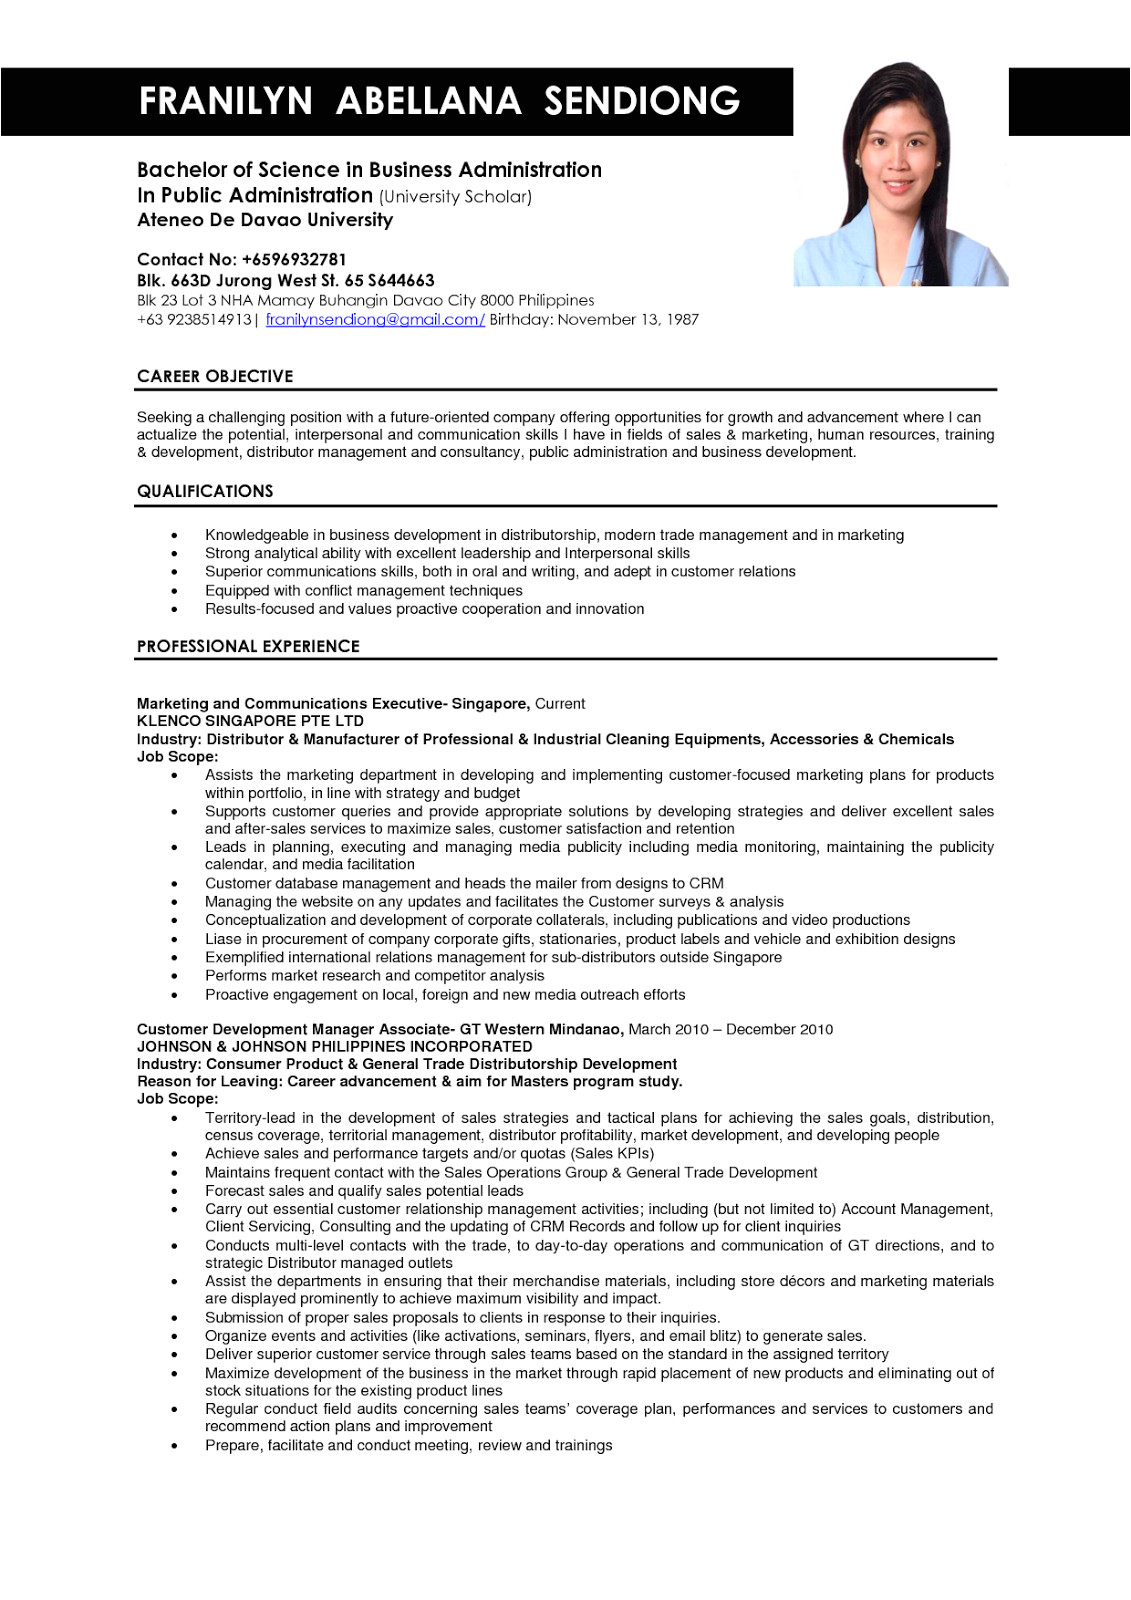 Resume format for Corporate Job Business Administration Resume Samples Sample Resumes